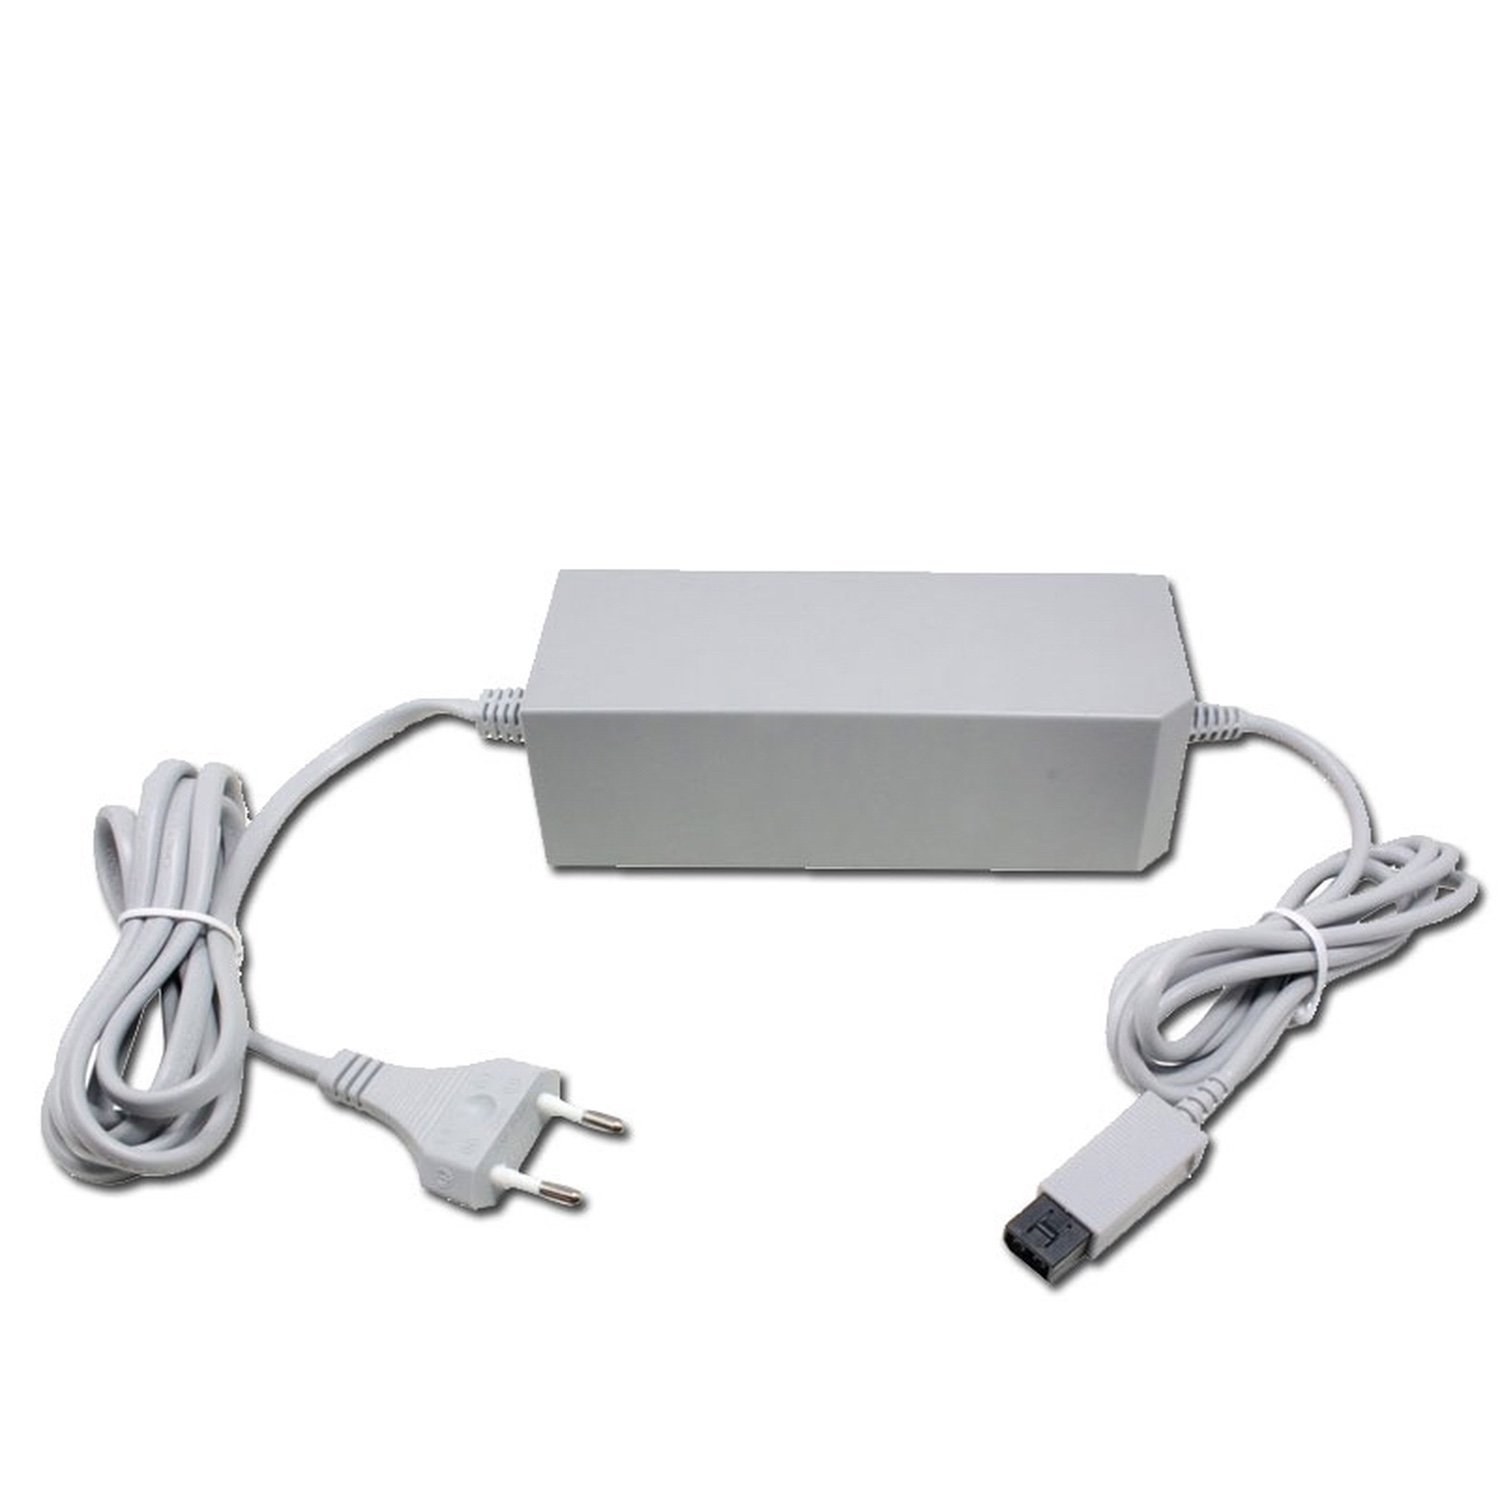 Wii AC Adapter/PAL ultimate band wii